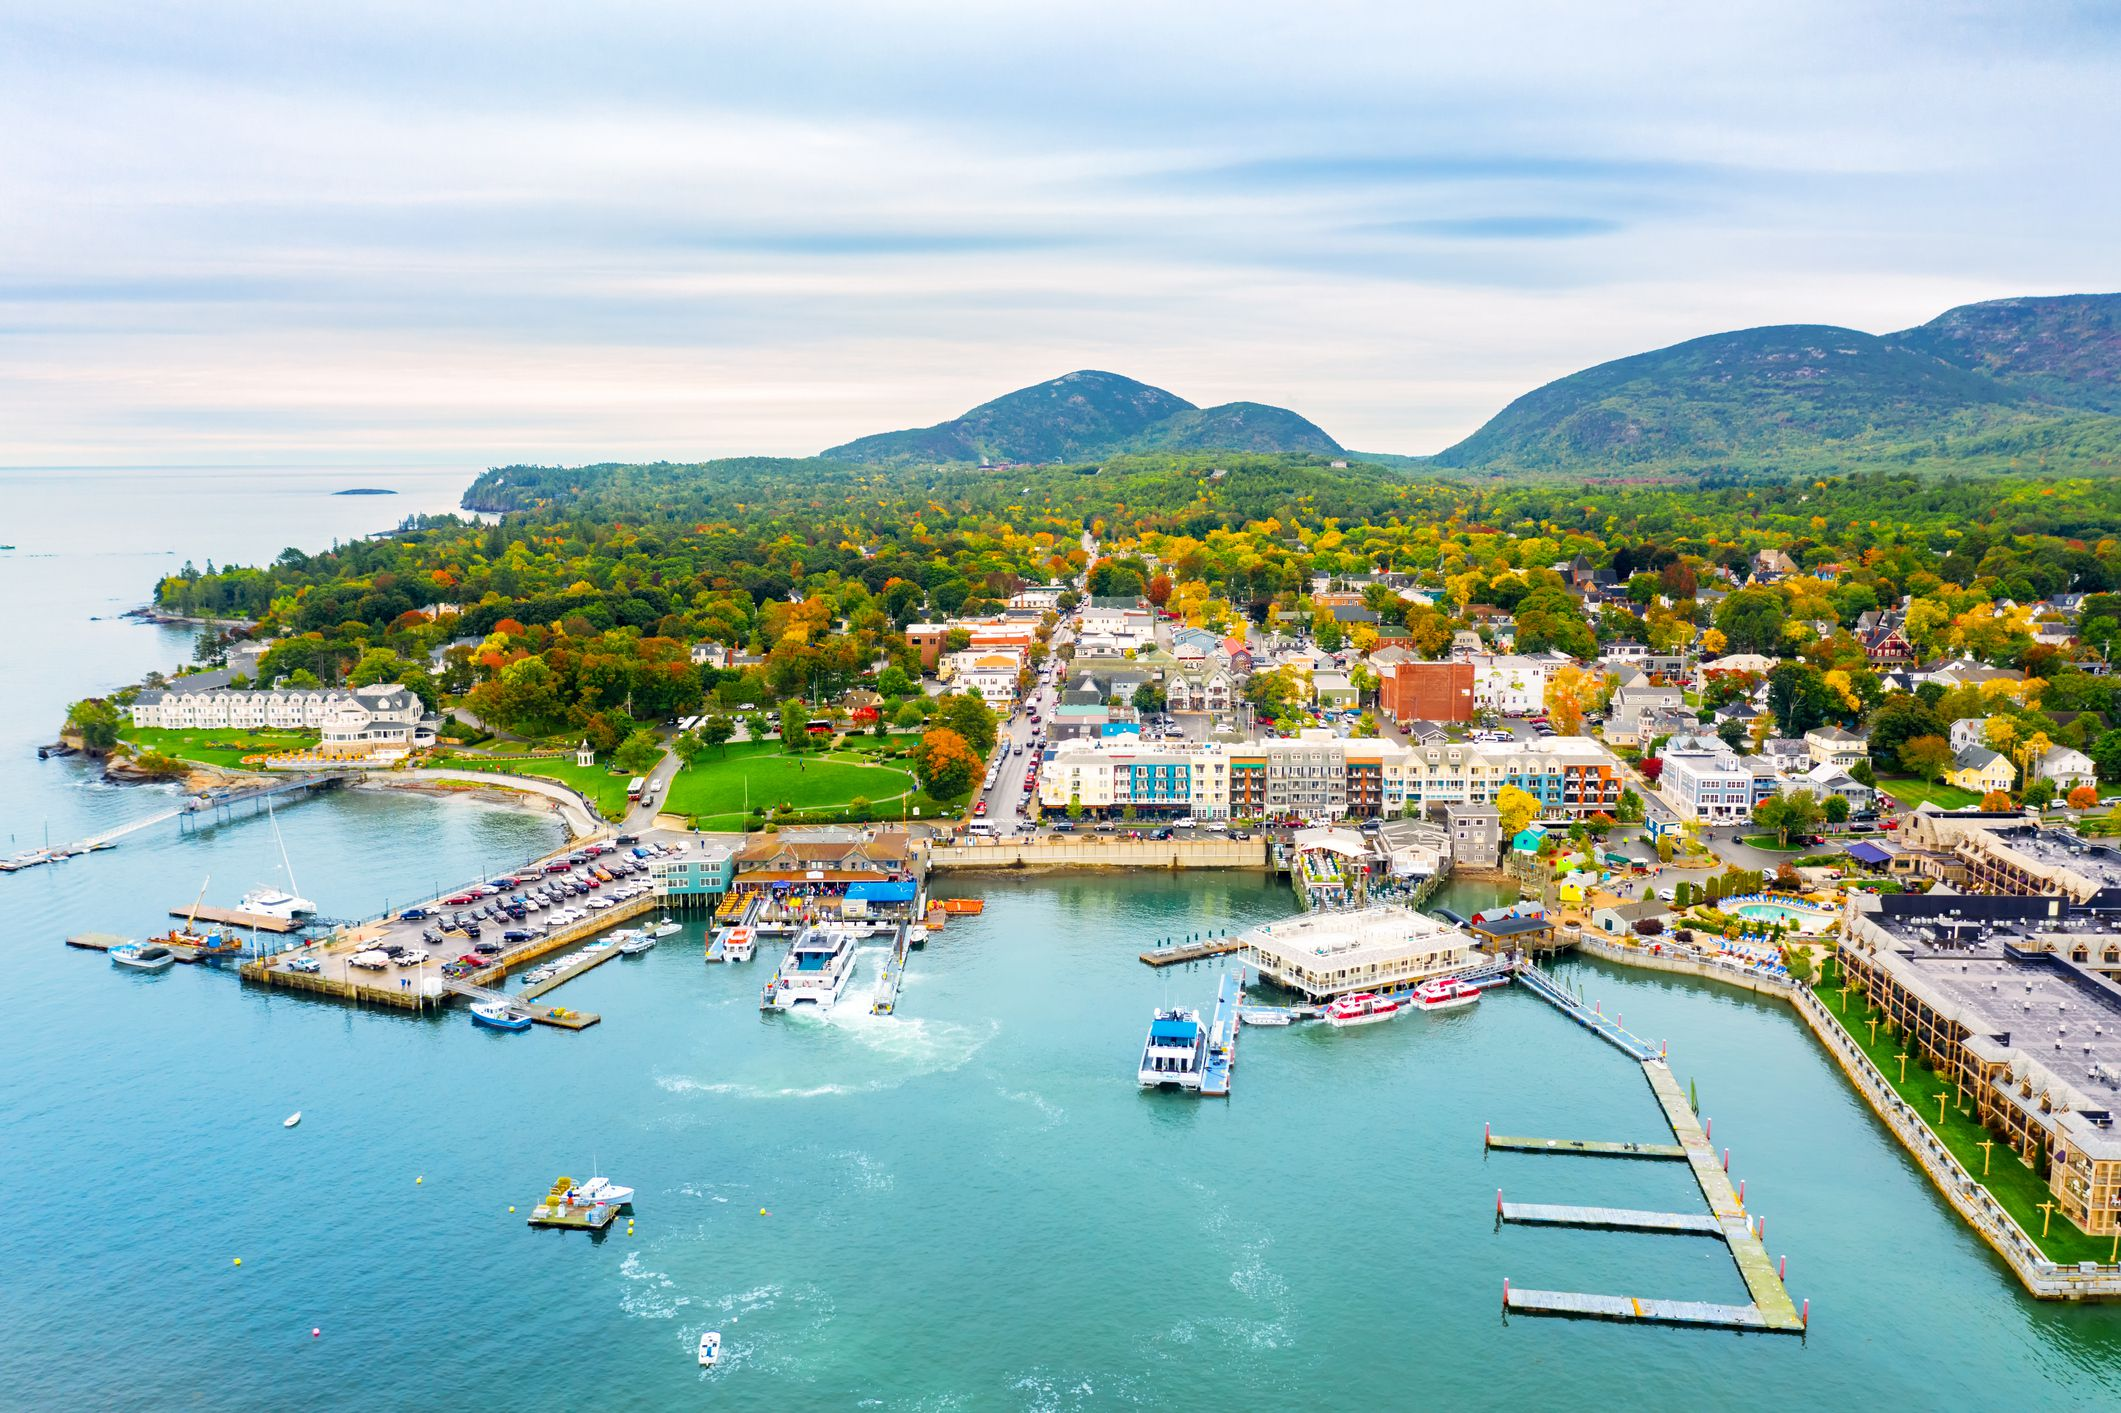 The Top 10 Things to Do in Bar Harbor, Maine